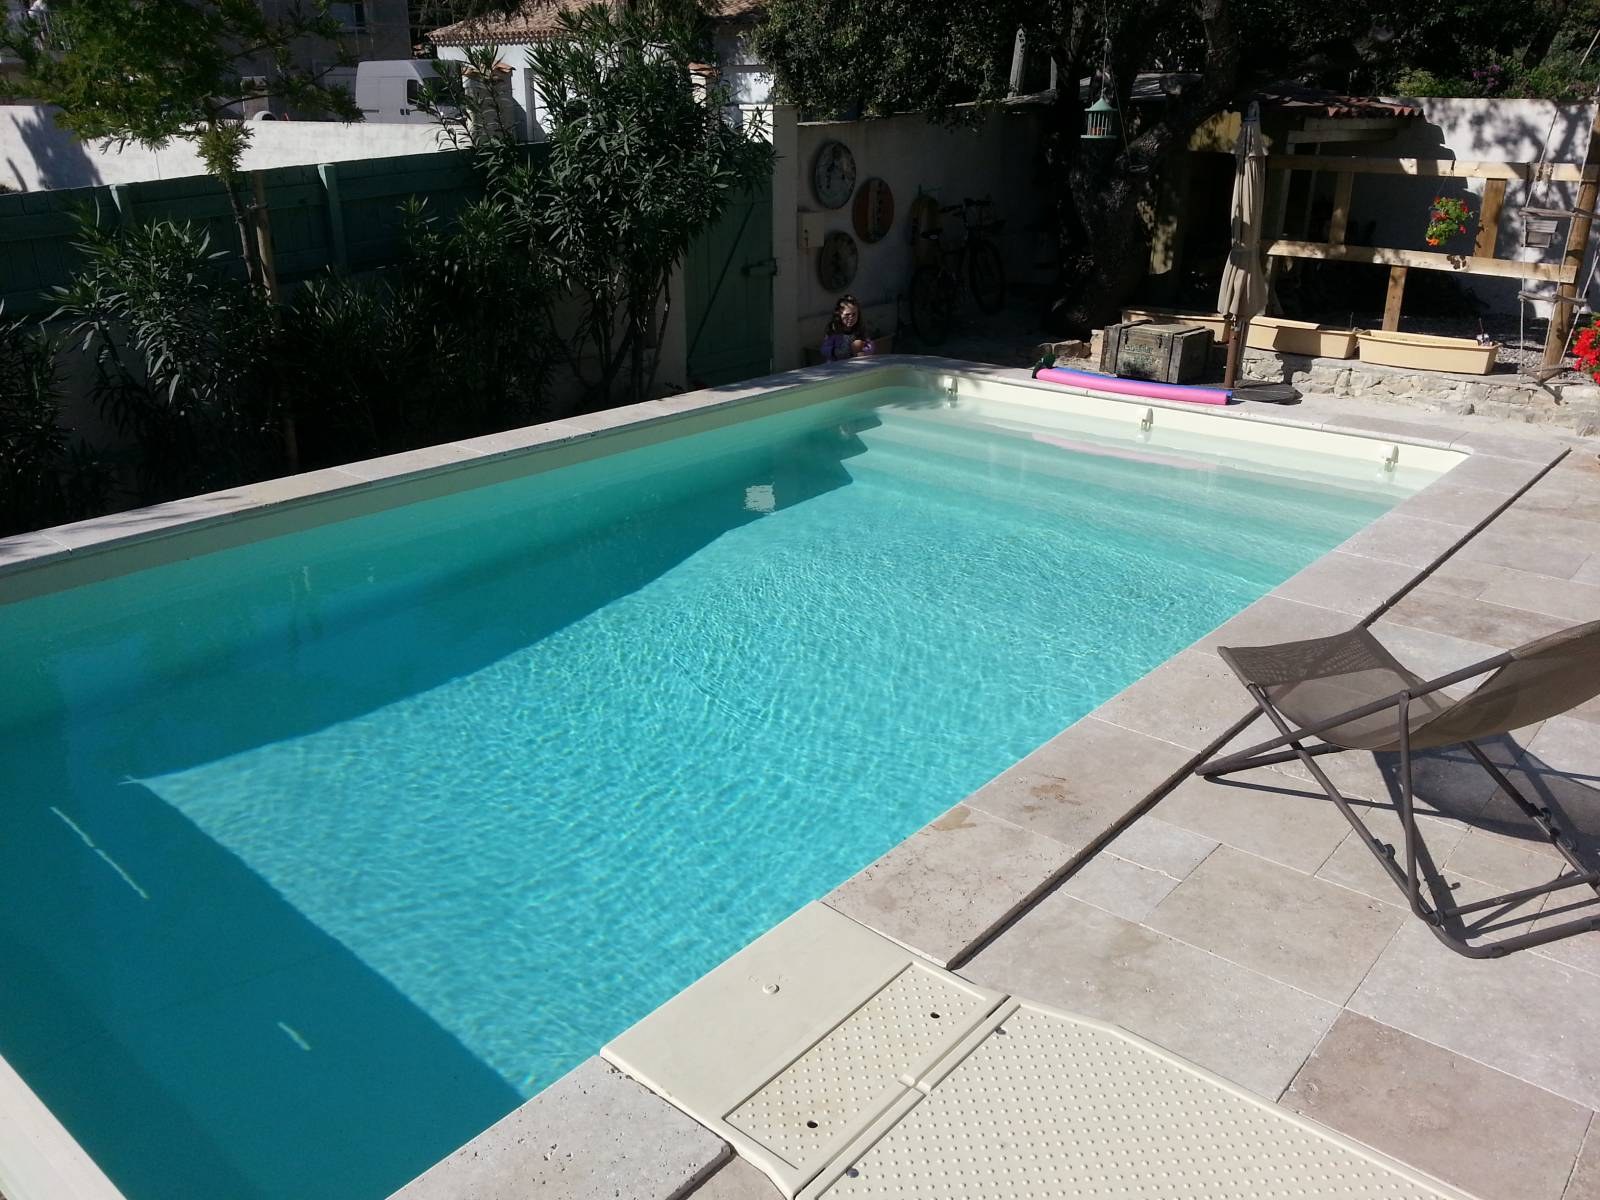 Tarif piscine desjoyaux 8x4 couverture immerge with tarif for Tarif piscine naturelle